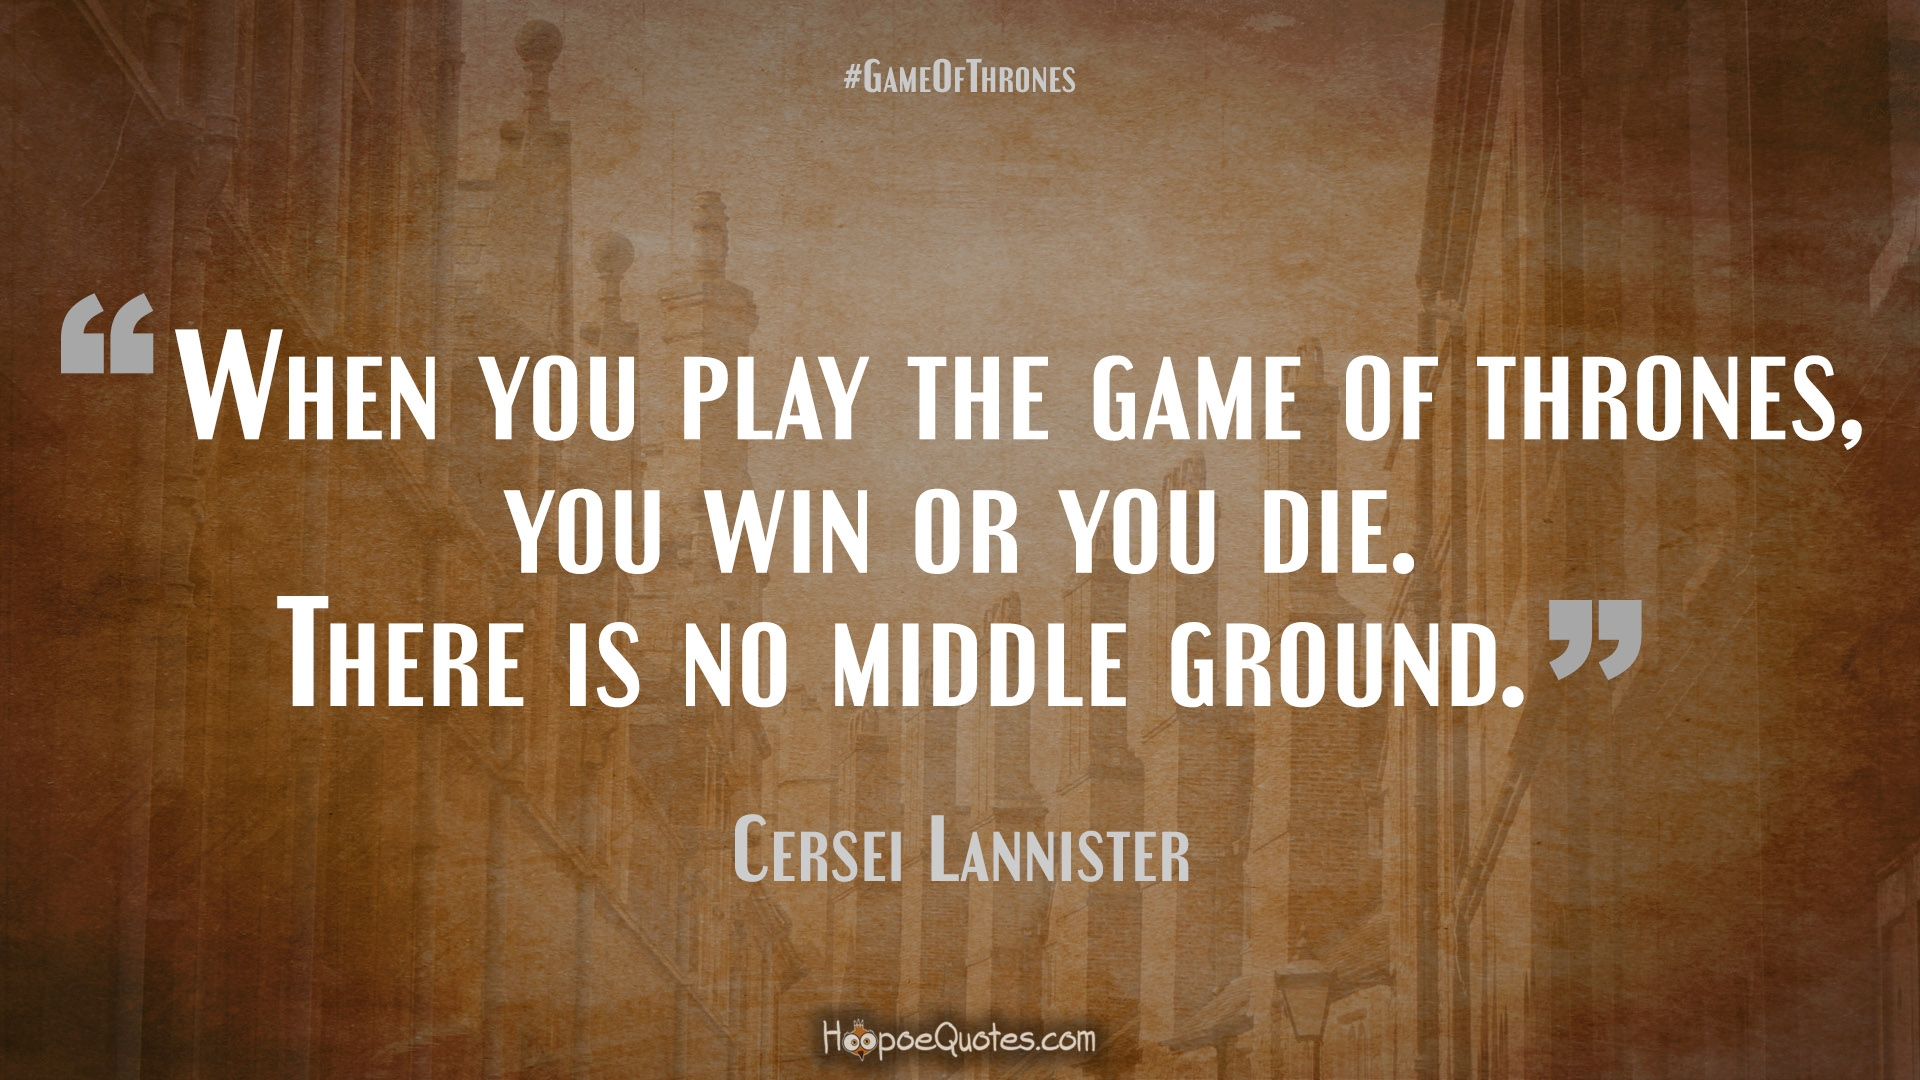 Memorable Quotes Cersei Lannister Quotes  Hoopoequotes